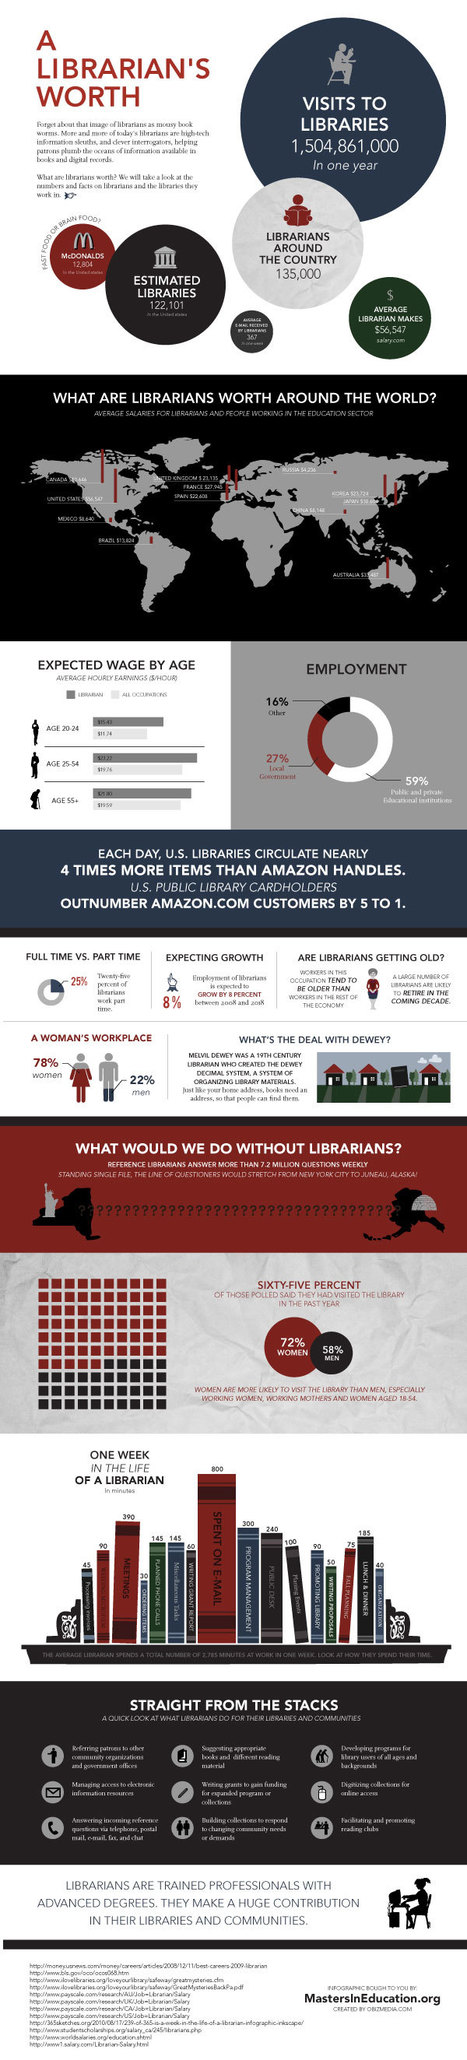 A Librarian's Worth Around the World | Visual.ly | Library world, new trends, technologies | Scoop.it